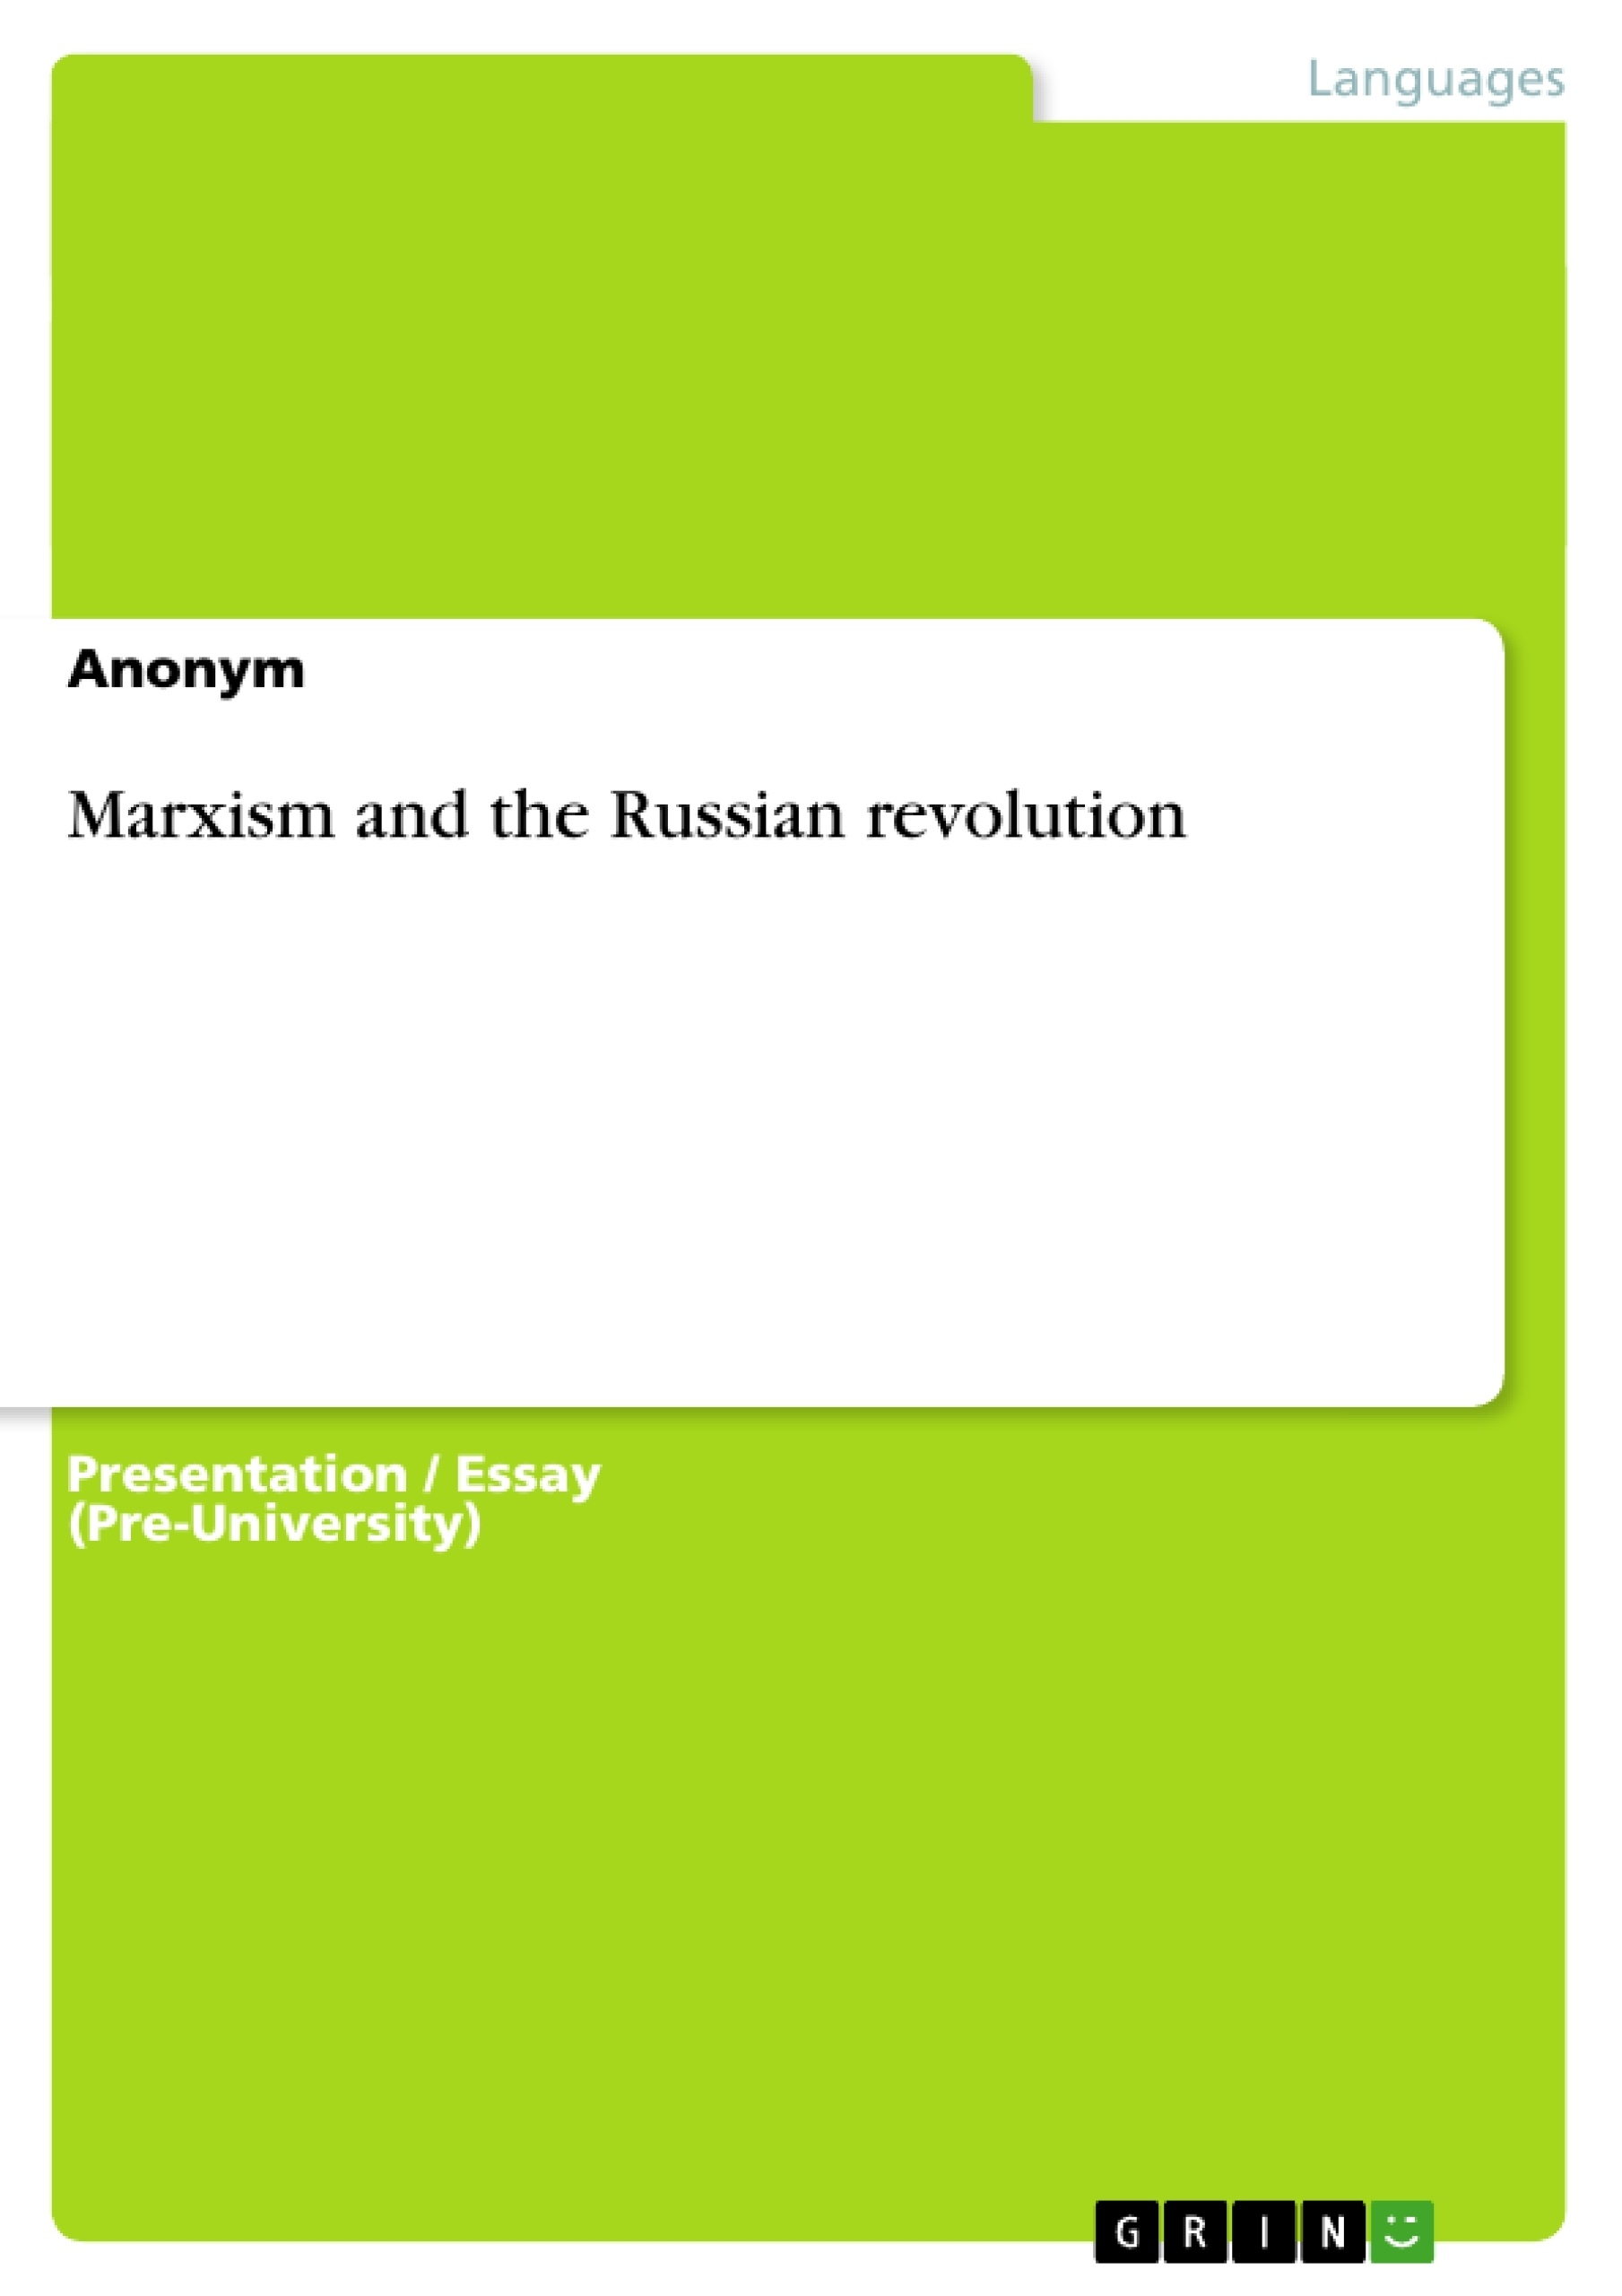 Title: Marxism and the Russian revolution